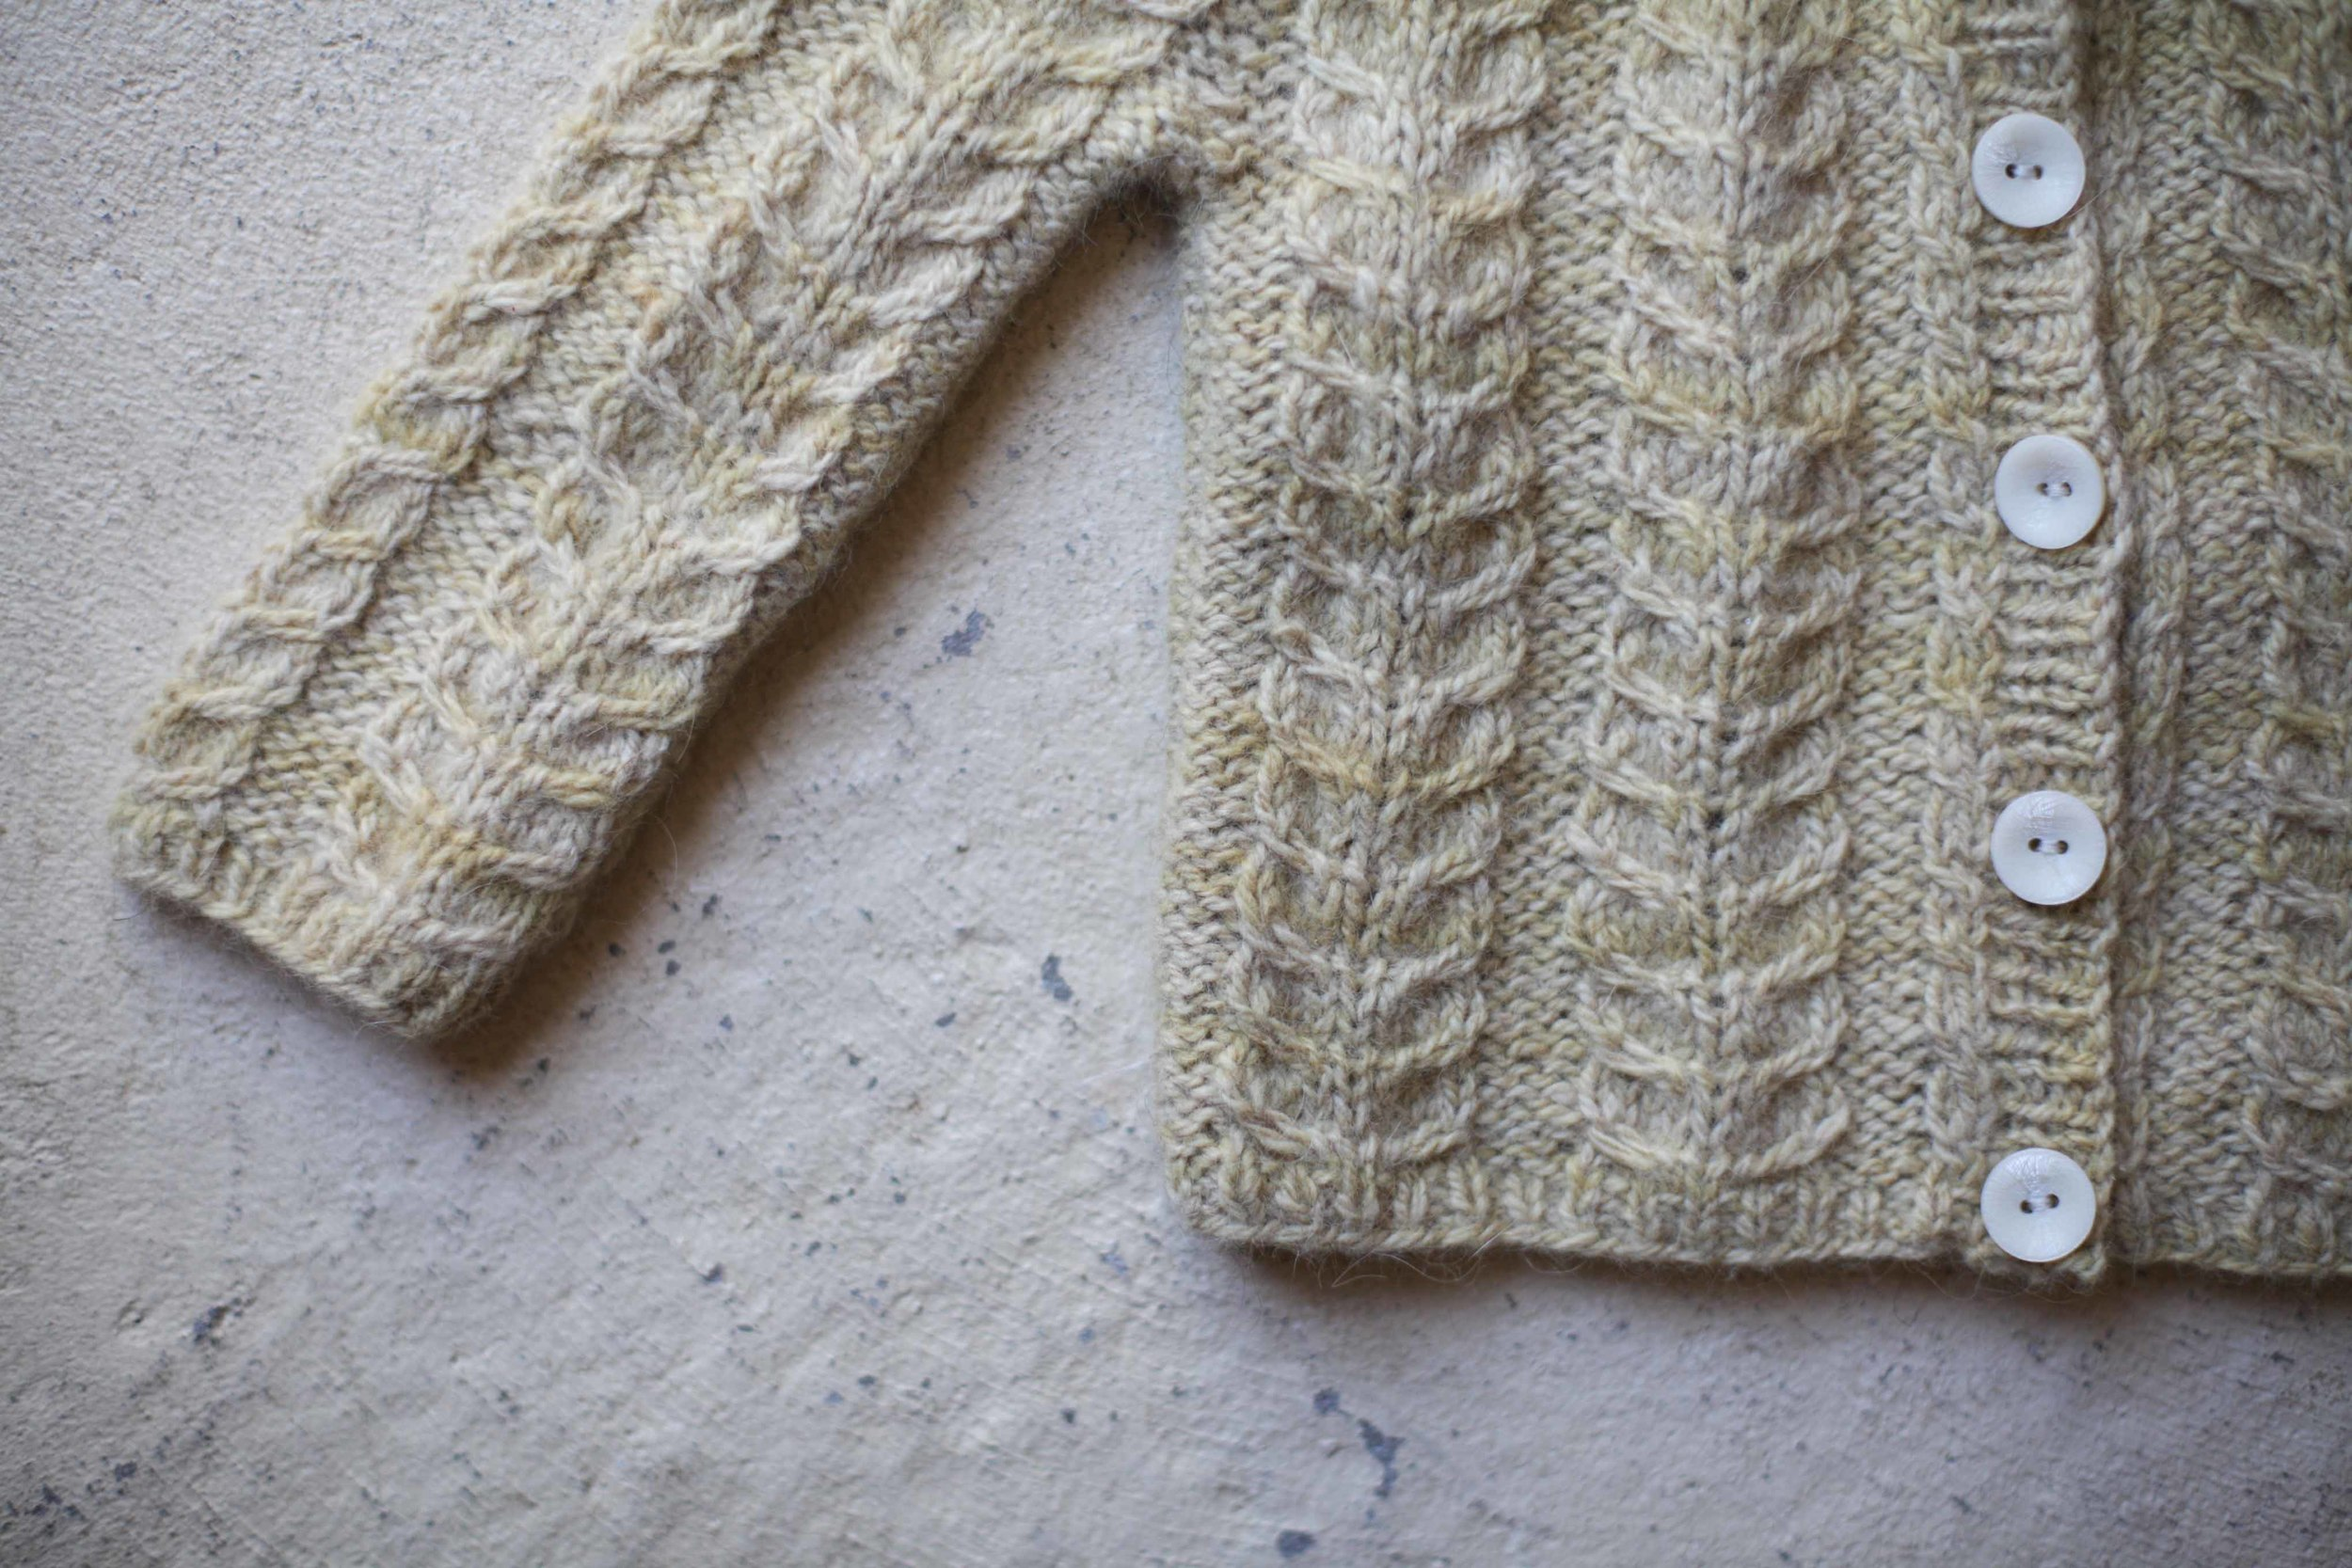 My final finished object of 2015 - The cabled cardy in Lullaby Knits.